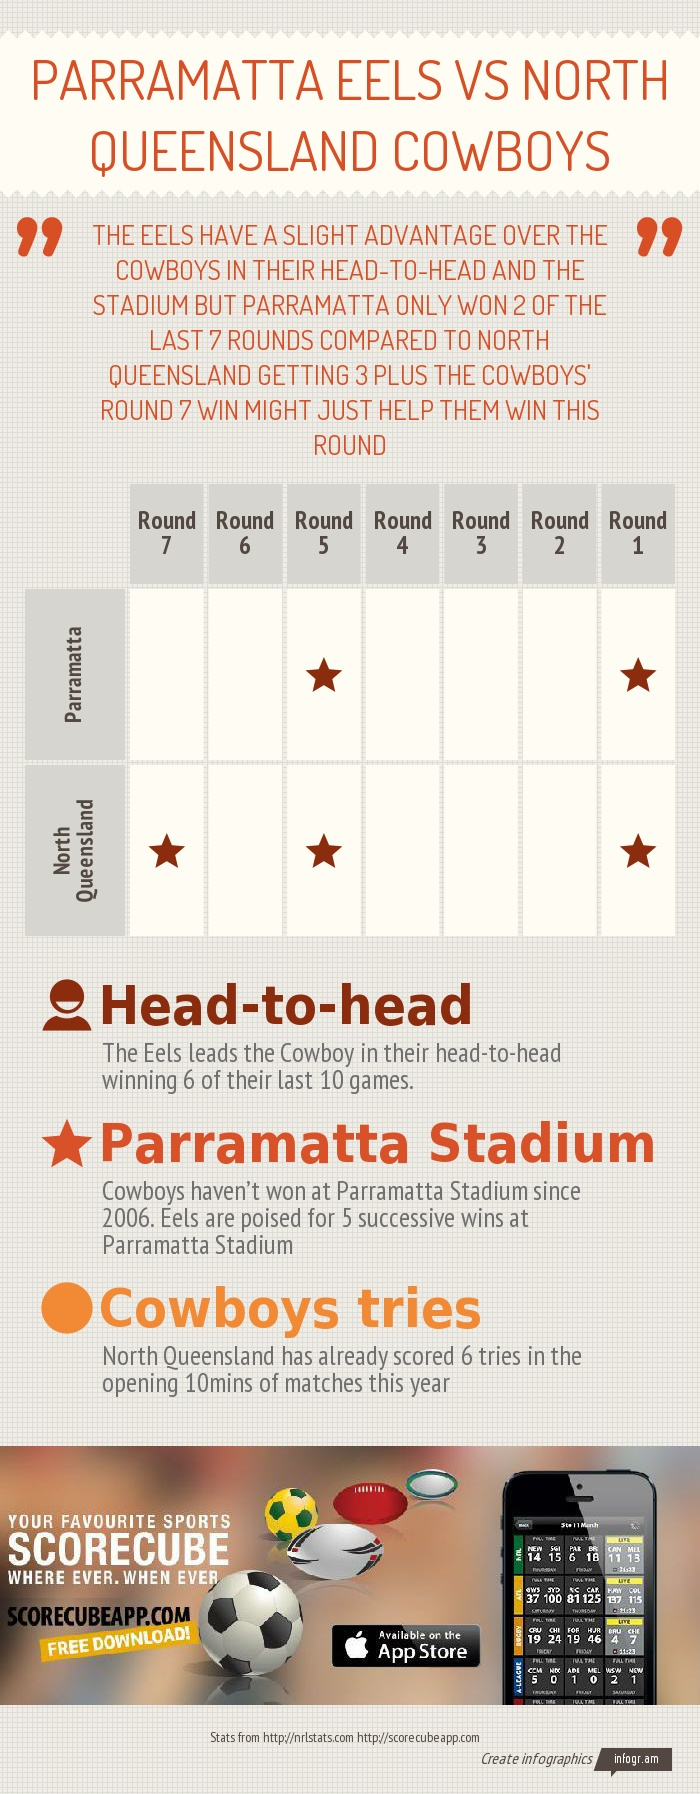 NRL - National Rugby League Preview of the Parramatta Eels vs Canberra Raiders game today.  Download the ScoreCube app to be updated on scores, stats and local schedule of the NRL games. http://scorecubeapp.com/  Download the app here: itunes download link  Follow us on Twitter: @scorecubeapp  We are also on Facebook:  https://www.facebook.com/scorecube